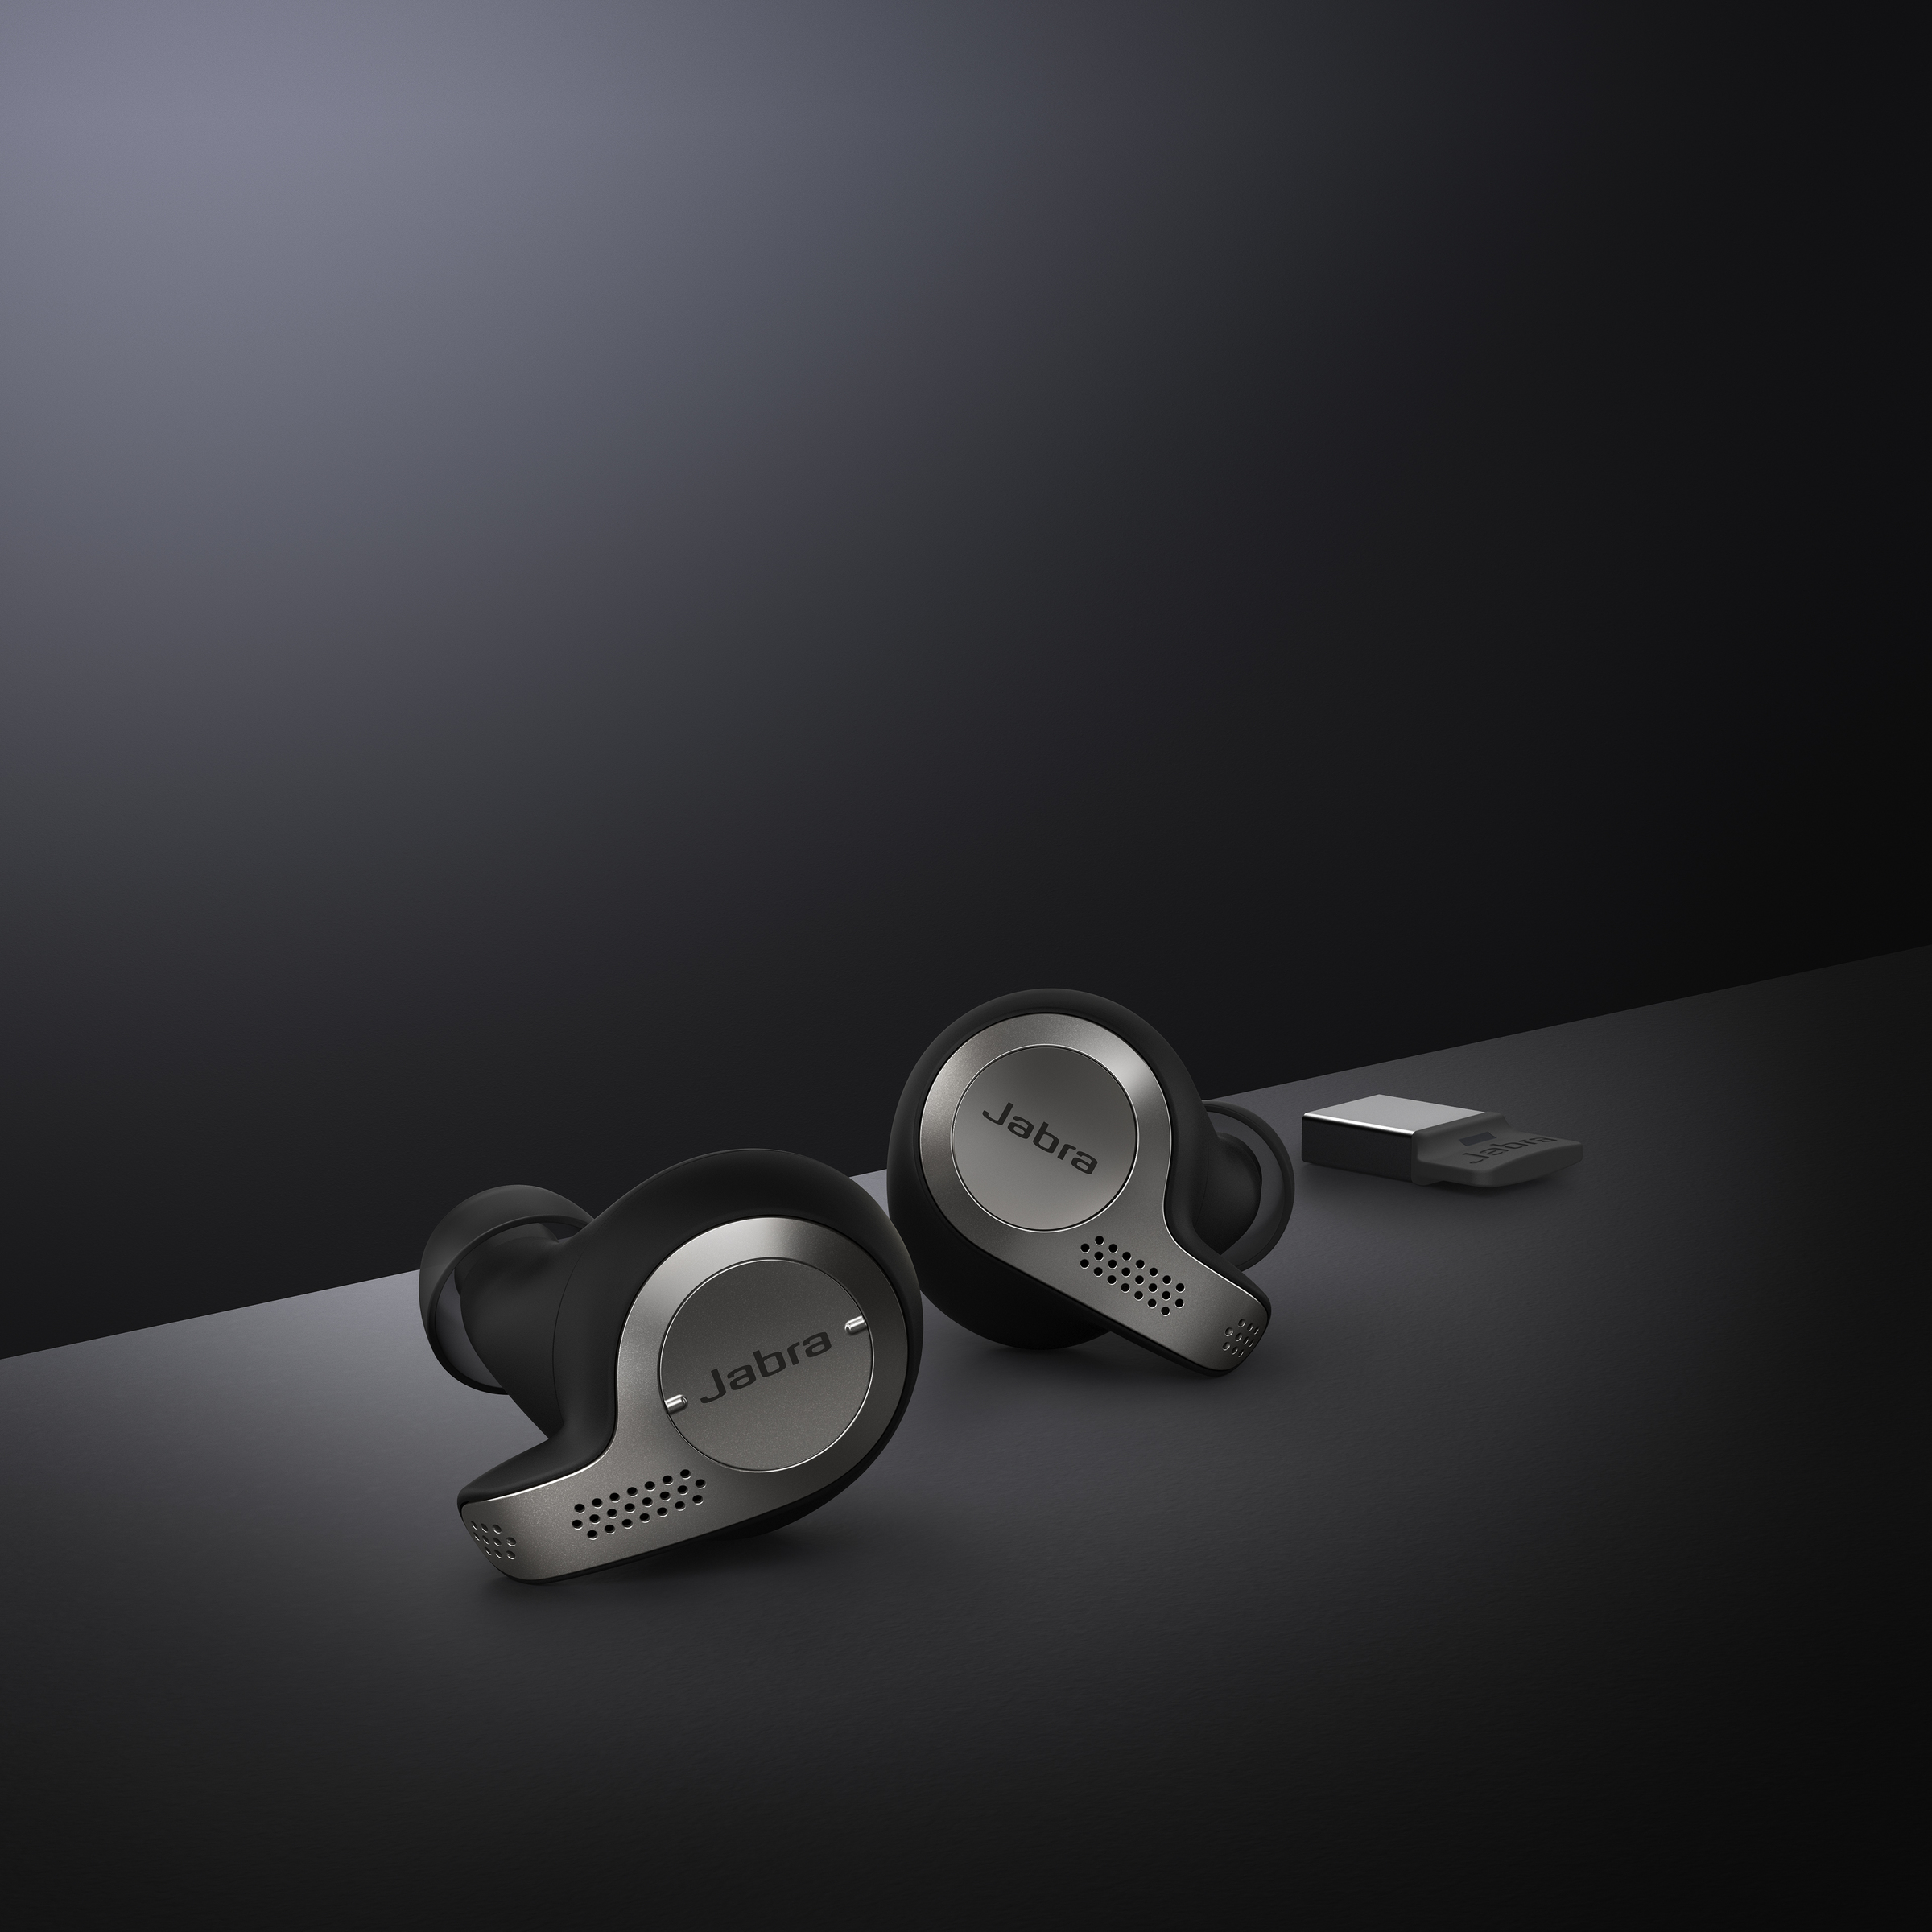 Jabra Evolve 65t Beauty Simp1.jpg